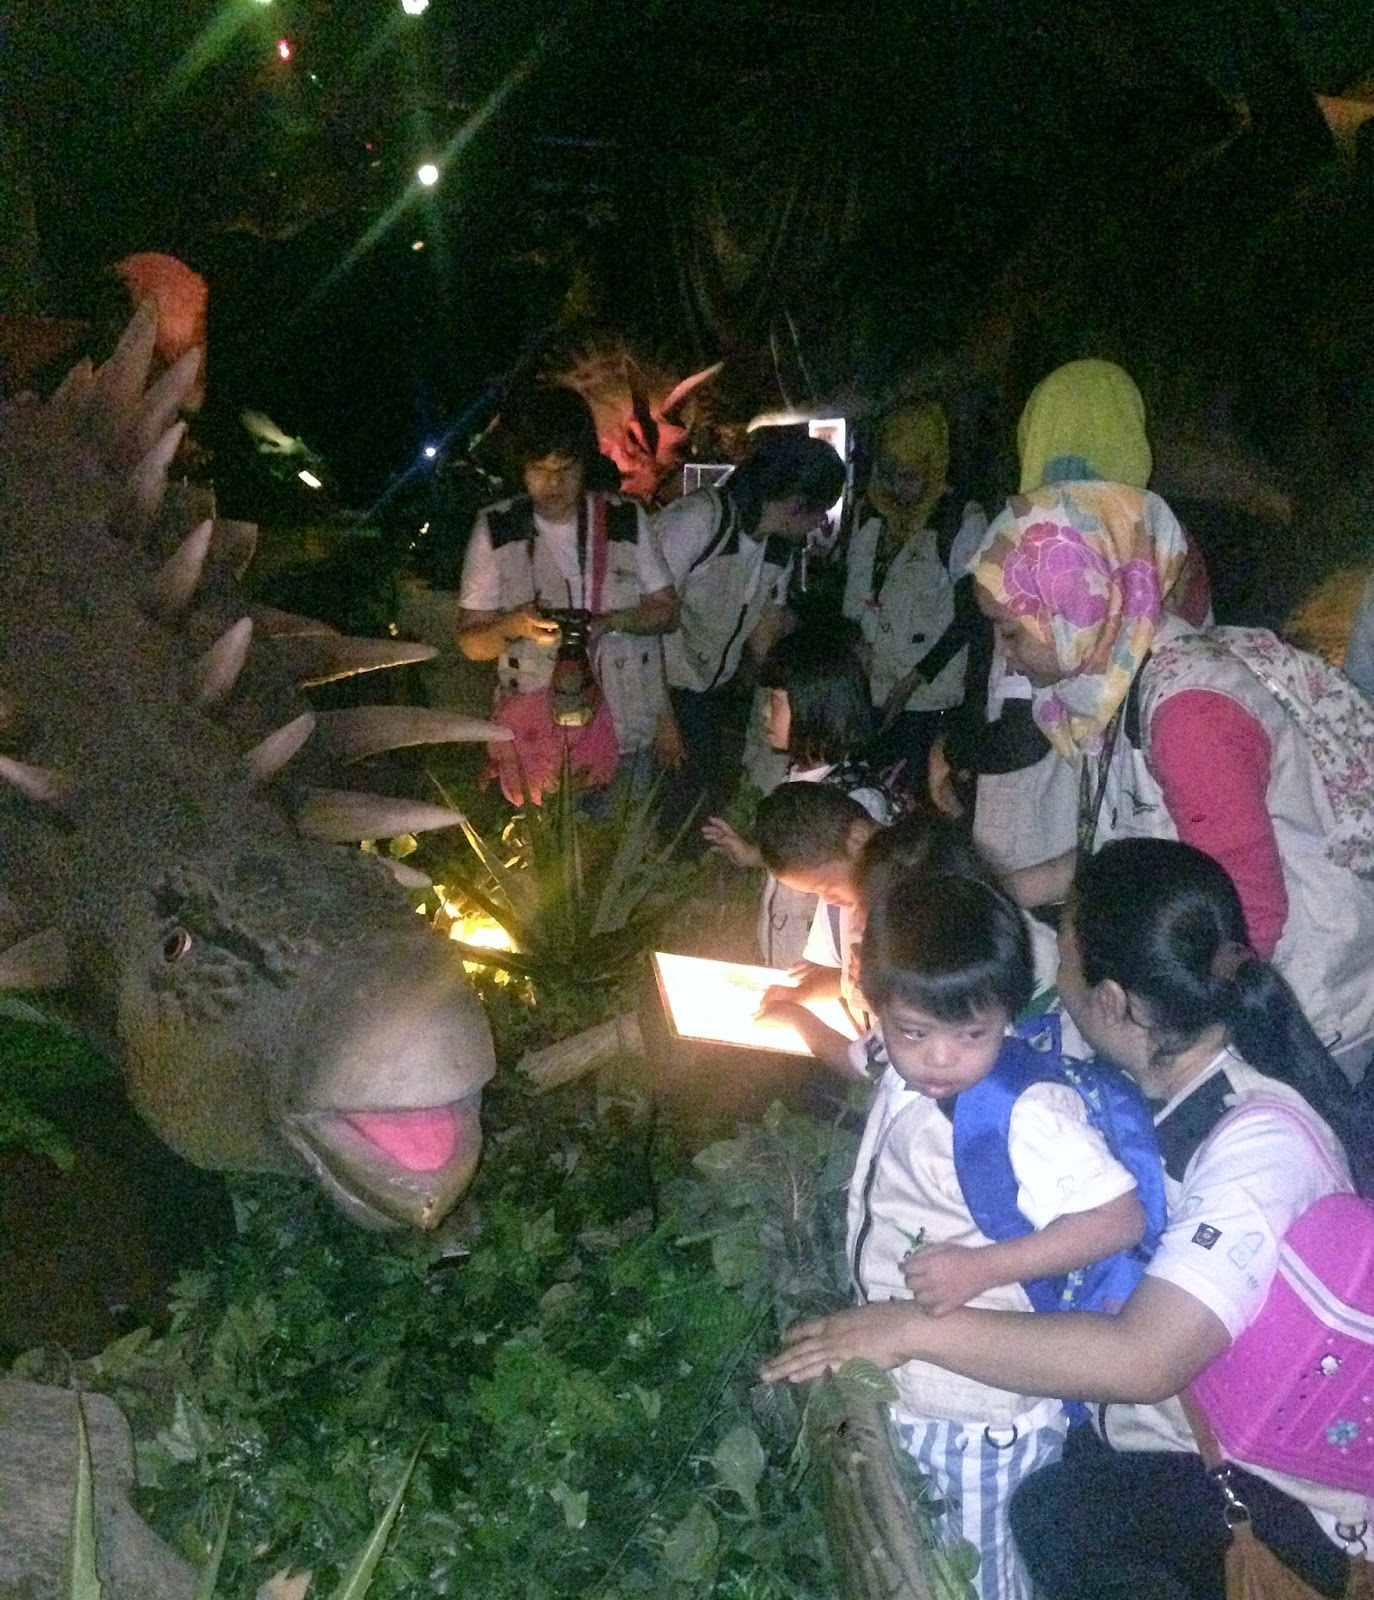 At The Exhibition The Children Were Decked In Paleontologist Vests With Radio Frequency Identification rfid Tags And Maps In Hand To Navigate The Dino Malaysian Foodie Dinoscovery By Dinosaurs Live Hosts Special Trip Back In Time For